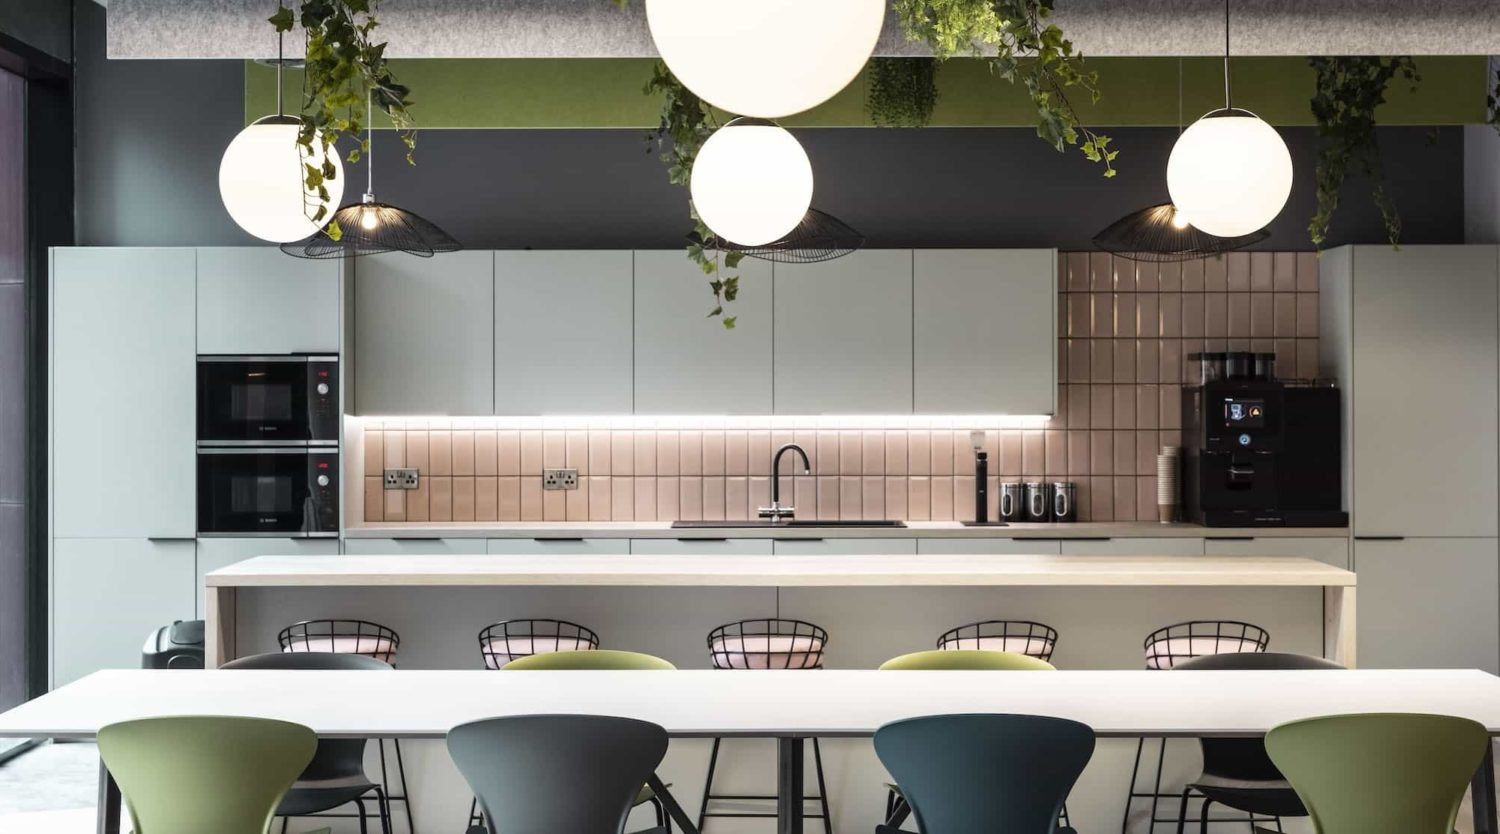 Mills Reeve office kitchen fit out